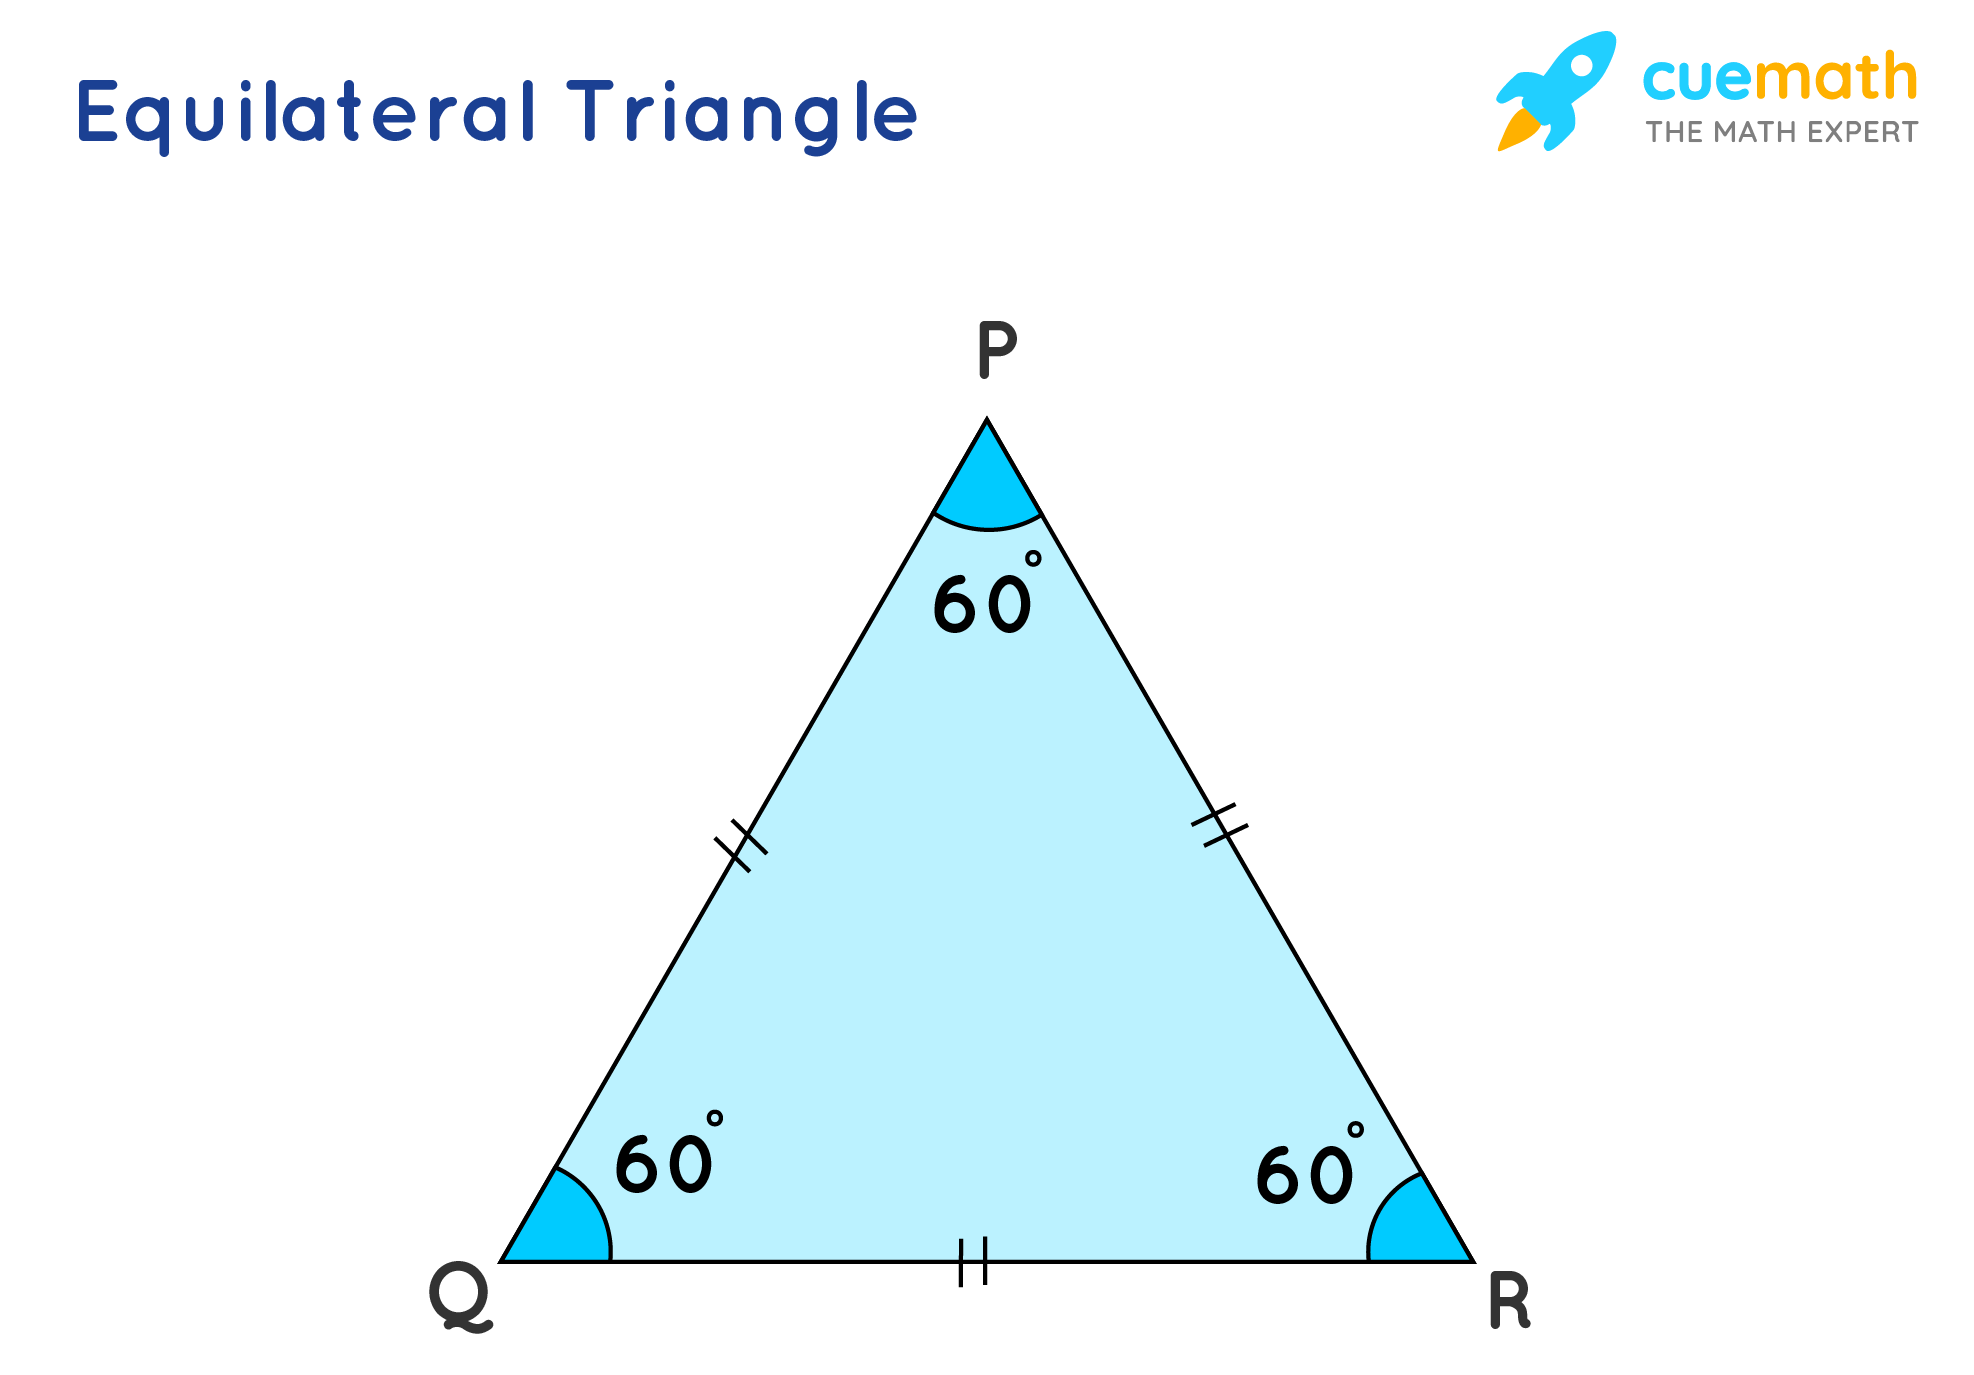 3 sided Equilateral shape